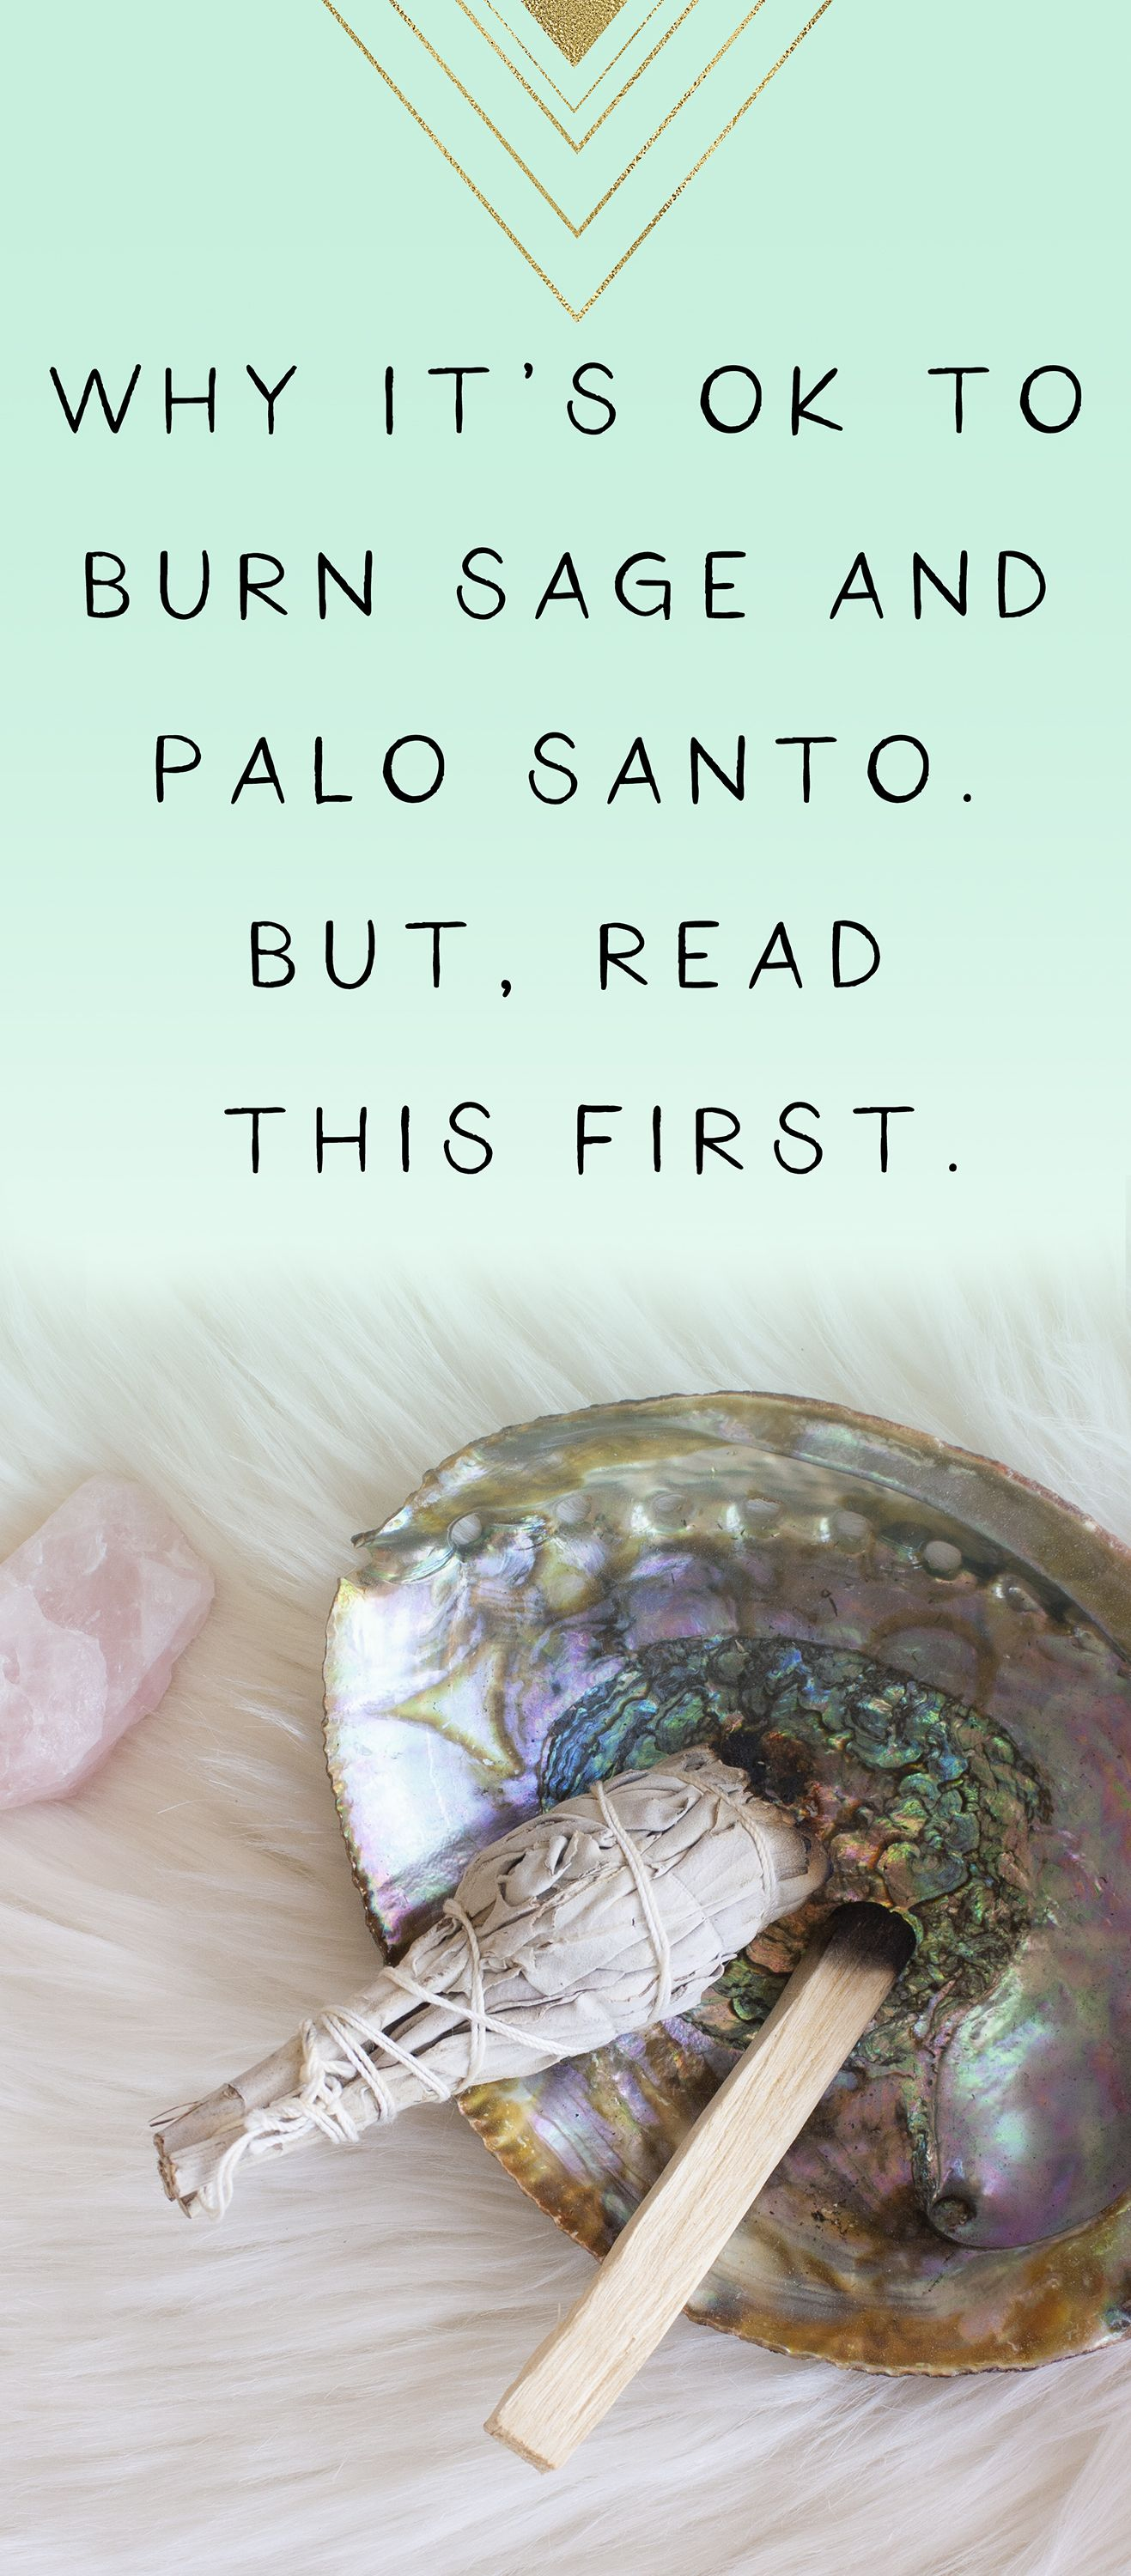 Why It S Ok To Burn Sage And Palo Santo But Read This First Zenned Out Burning Sage Palo Santo Benefits Of Burning Sage